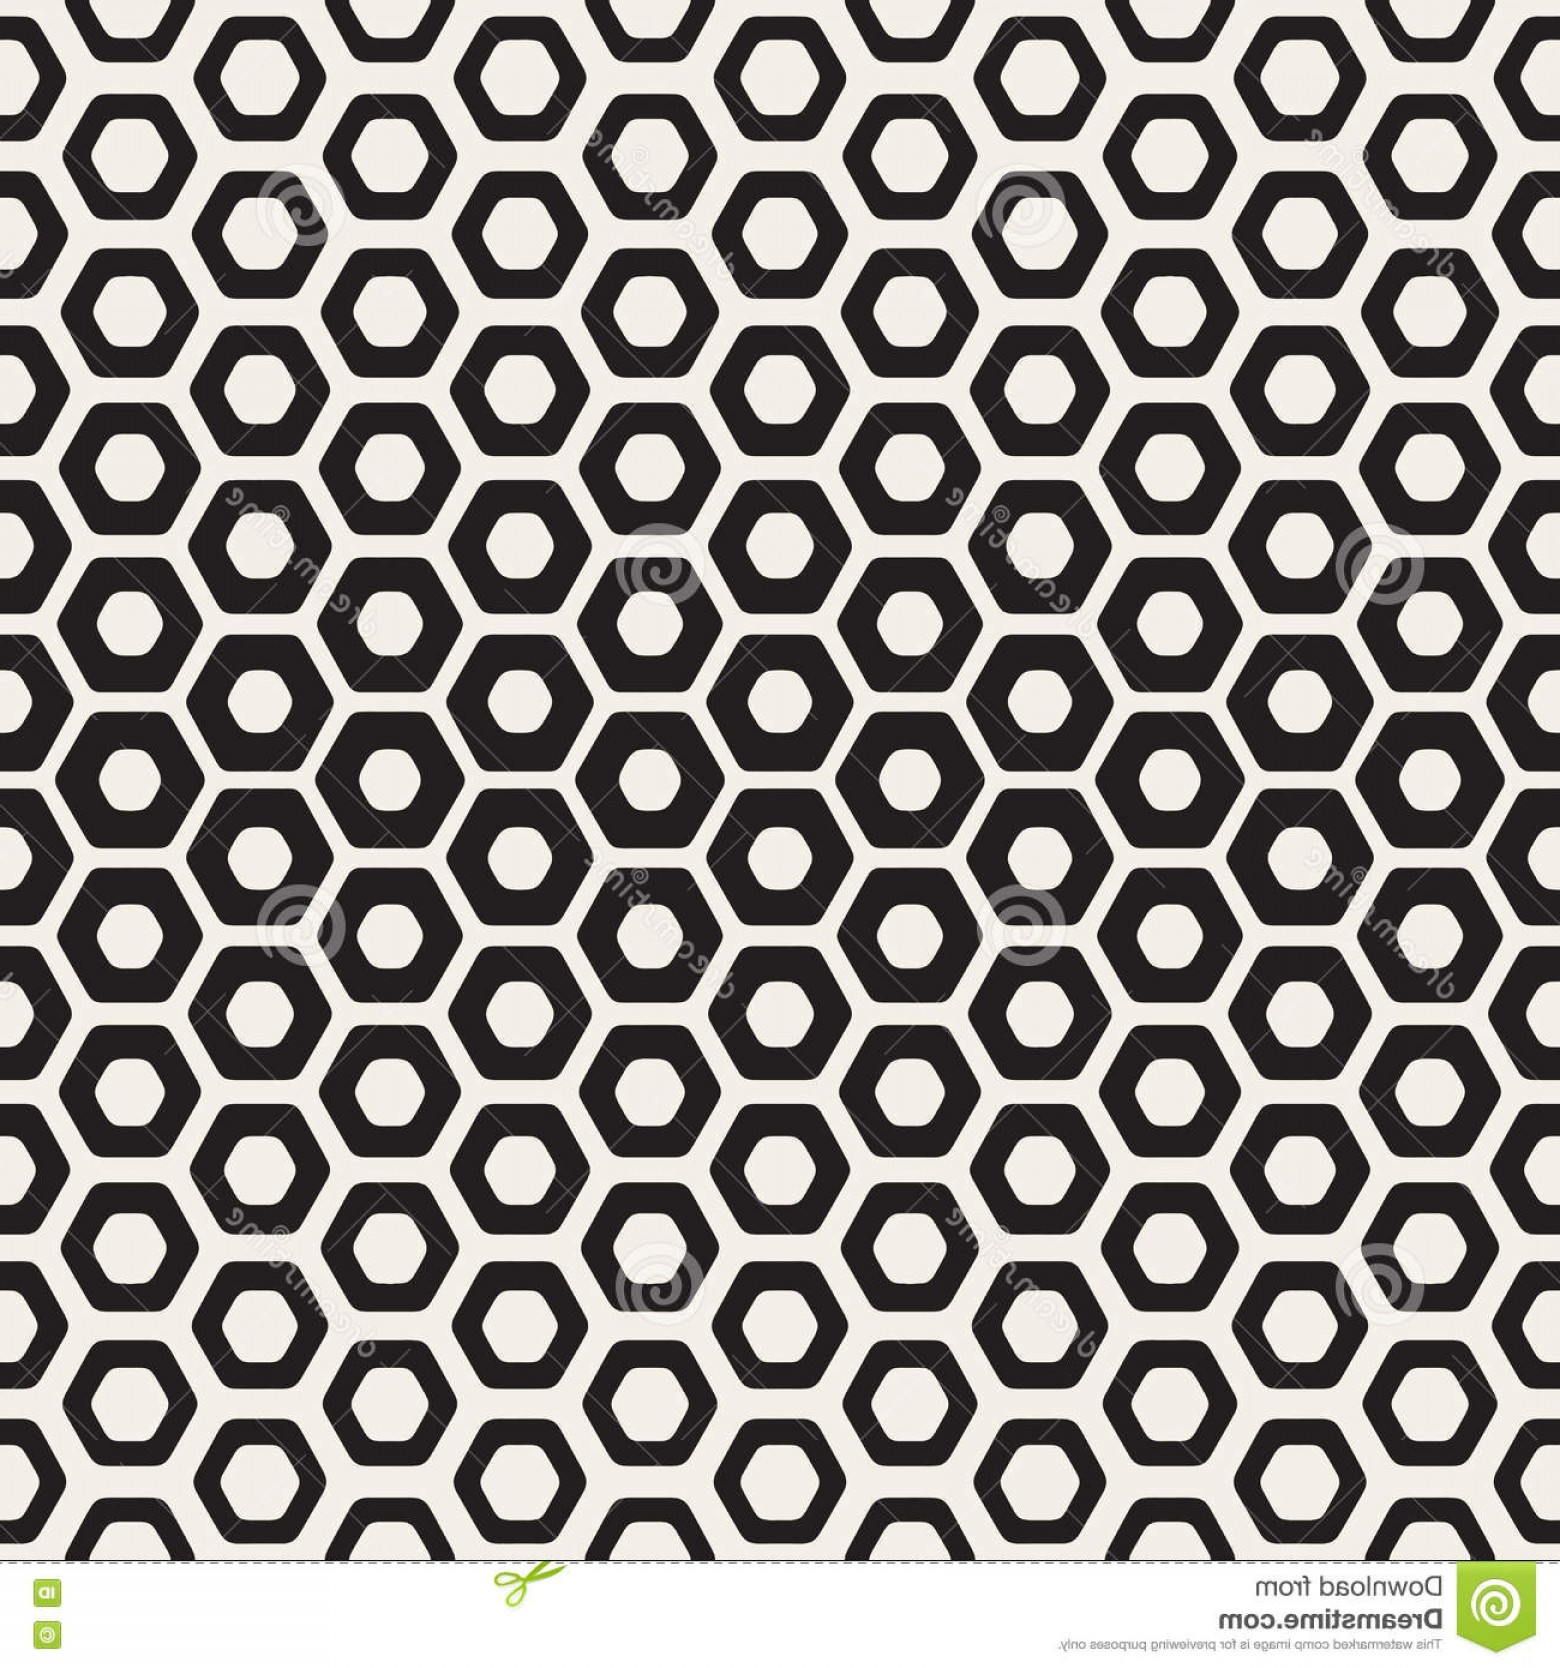 Hexagon Honeycomb Pattern Vector: Stock Illustration Vector Seamless White Black Hexagon Halftone Honeycomb Pattern Abstract Geometric Background Design Image